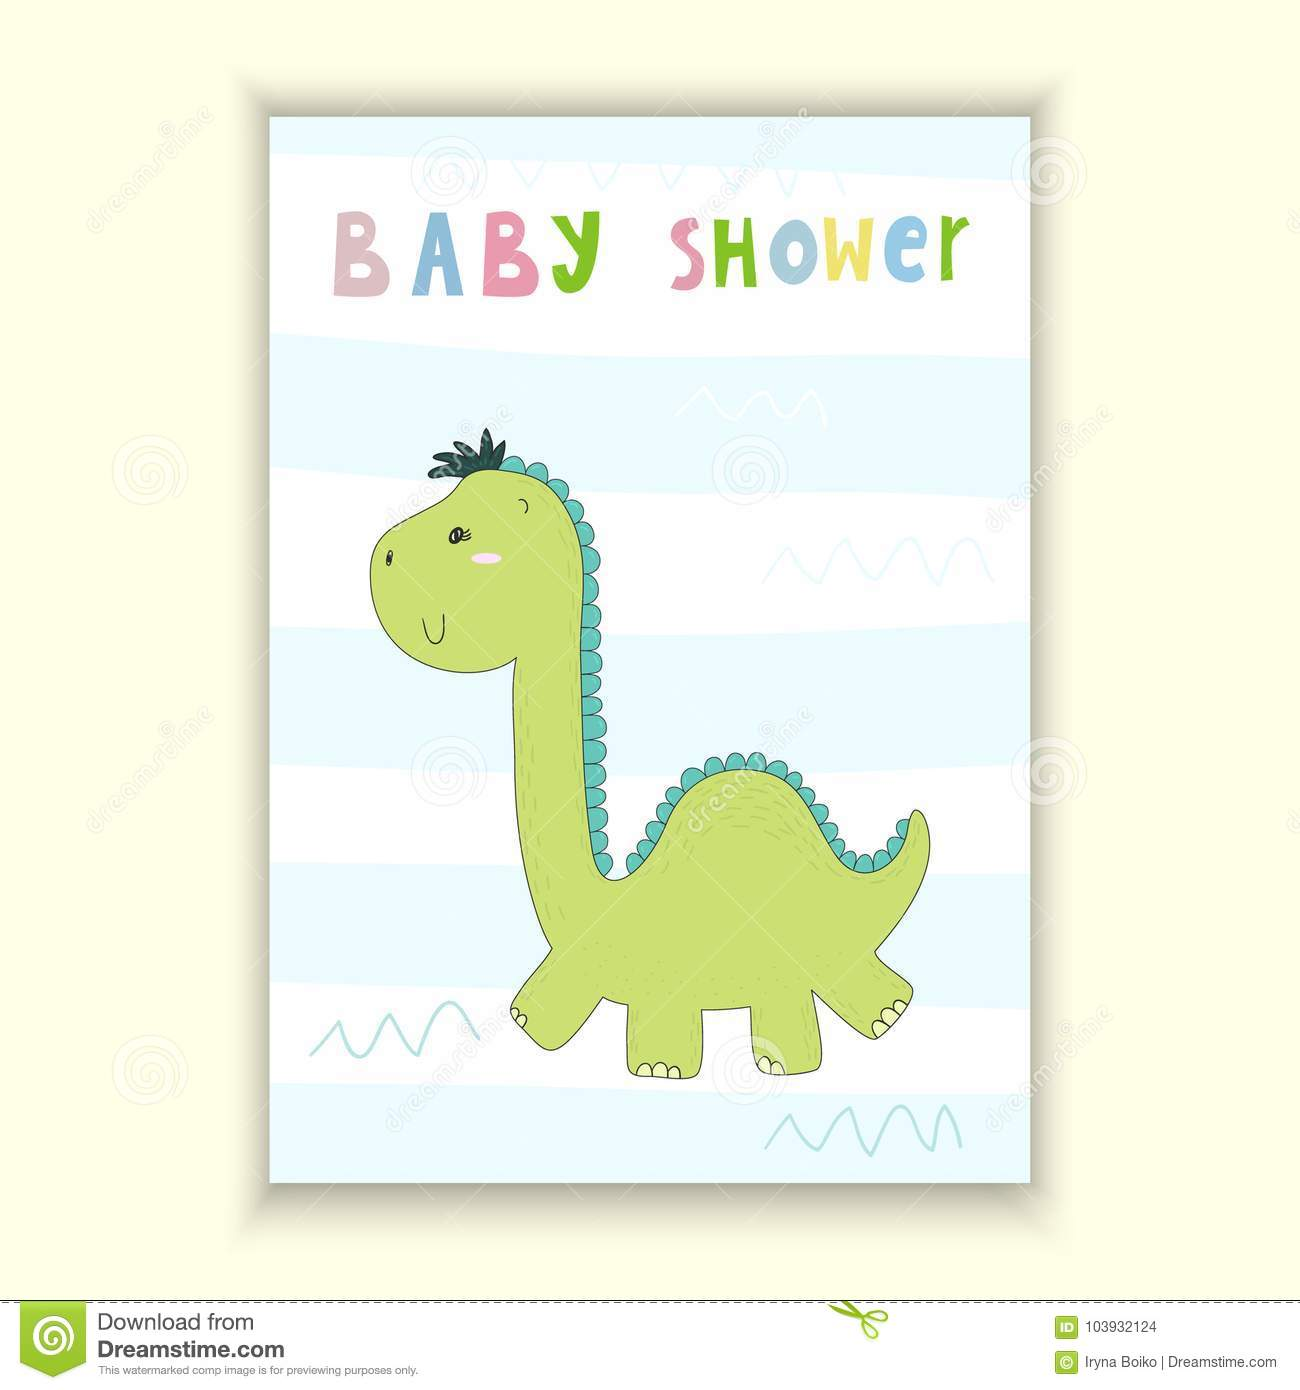 graphic about Baby Shower Card Printable called Youngster Shower Card Design and style. Adorable Hand Drawn Card With Dinosaur